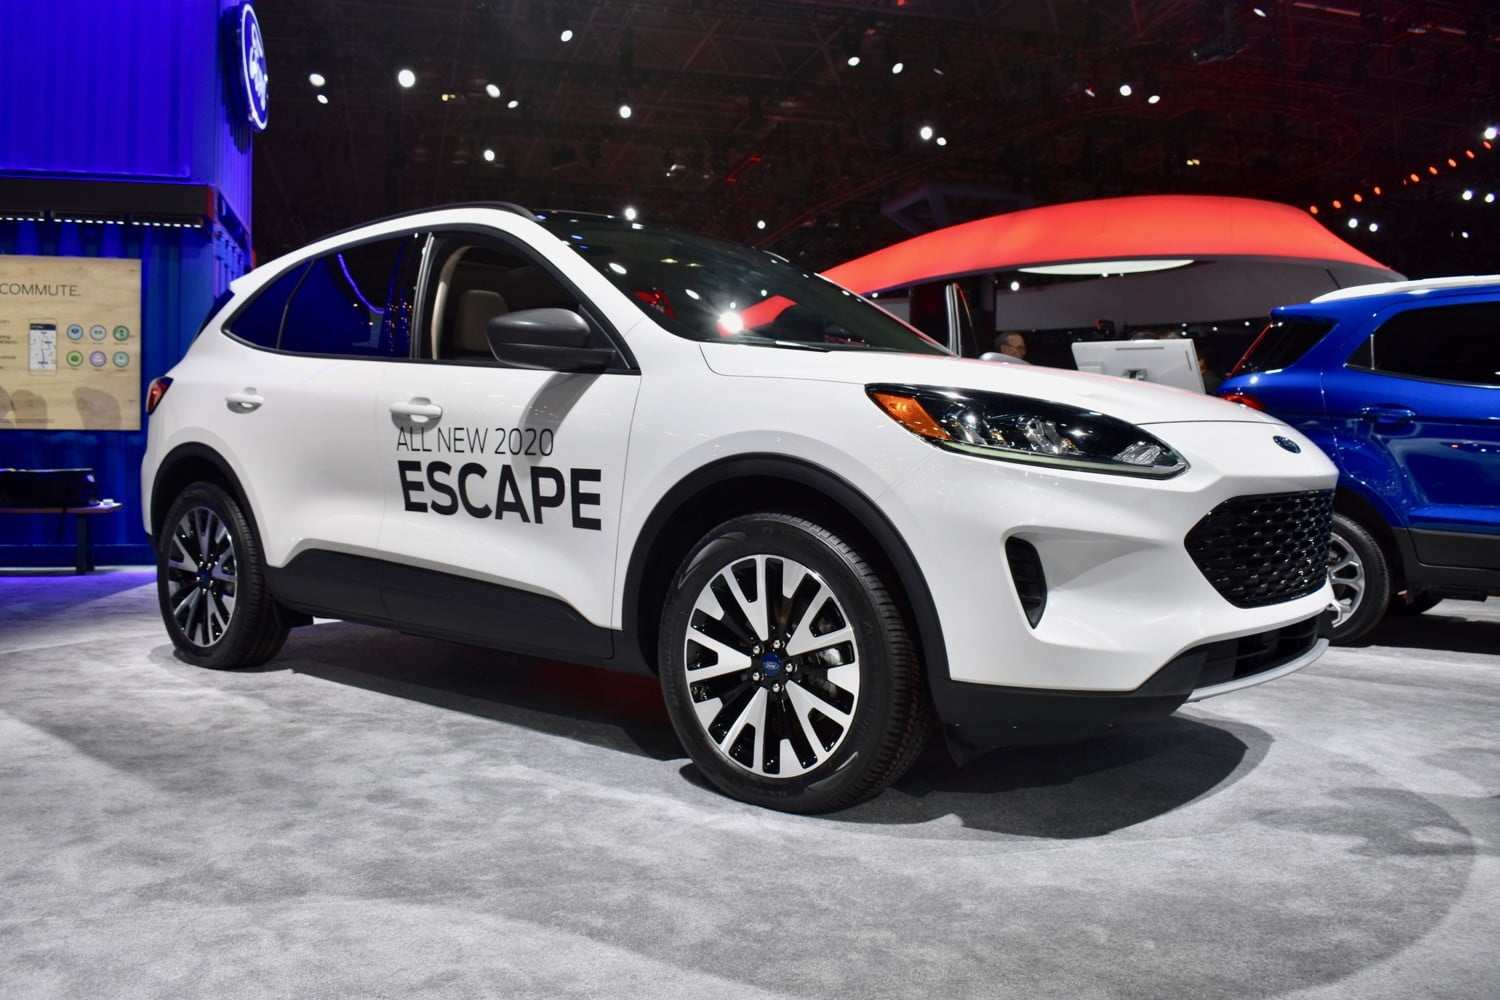 54 A Ford Hybrid Escape 2020 Photos